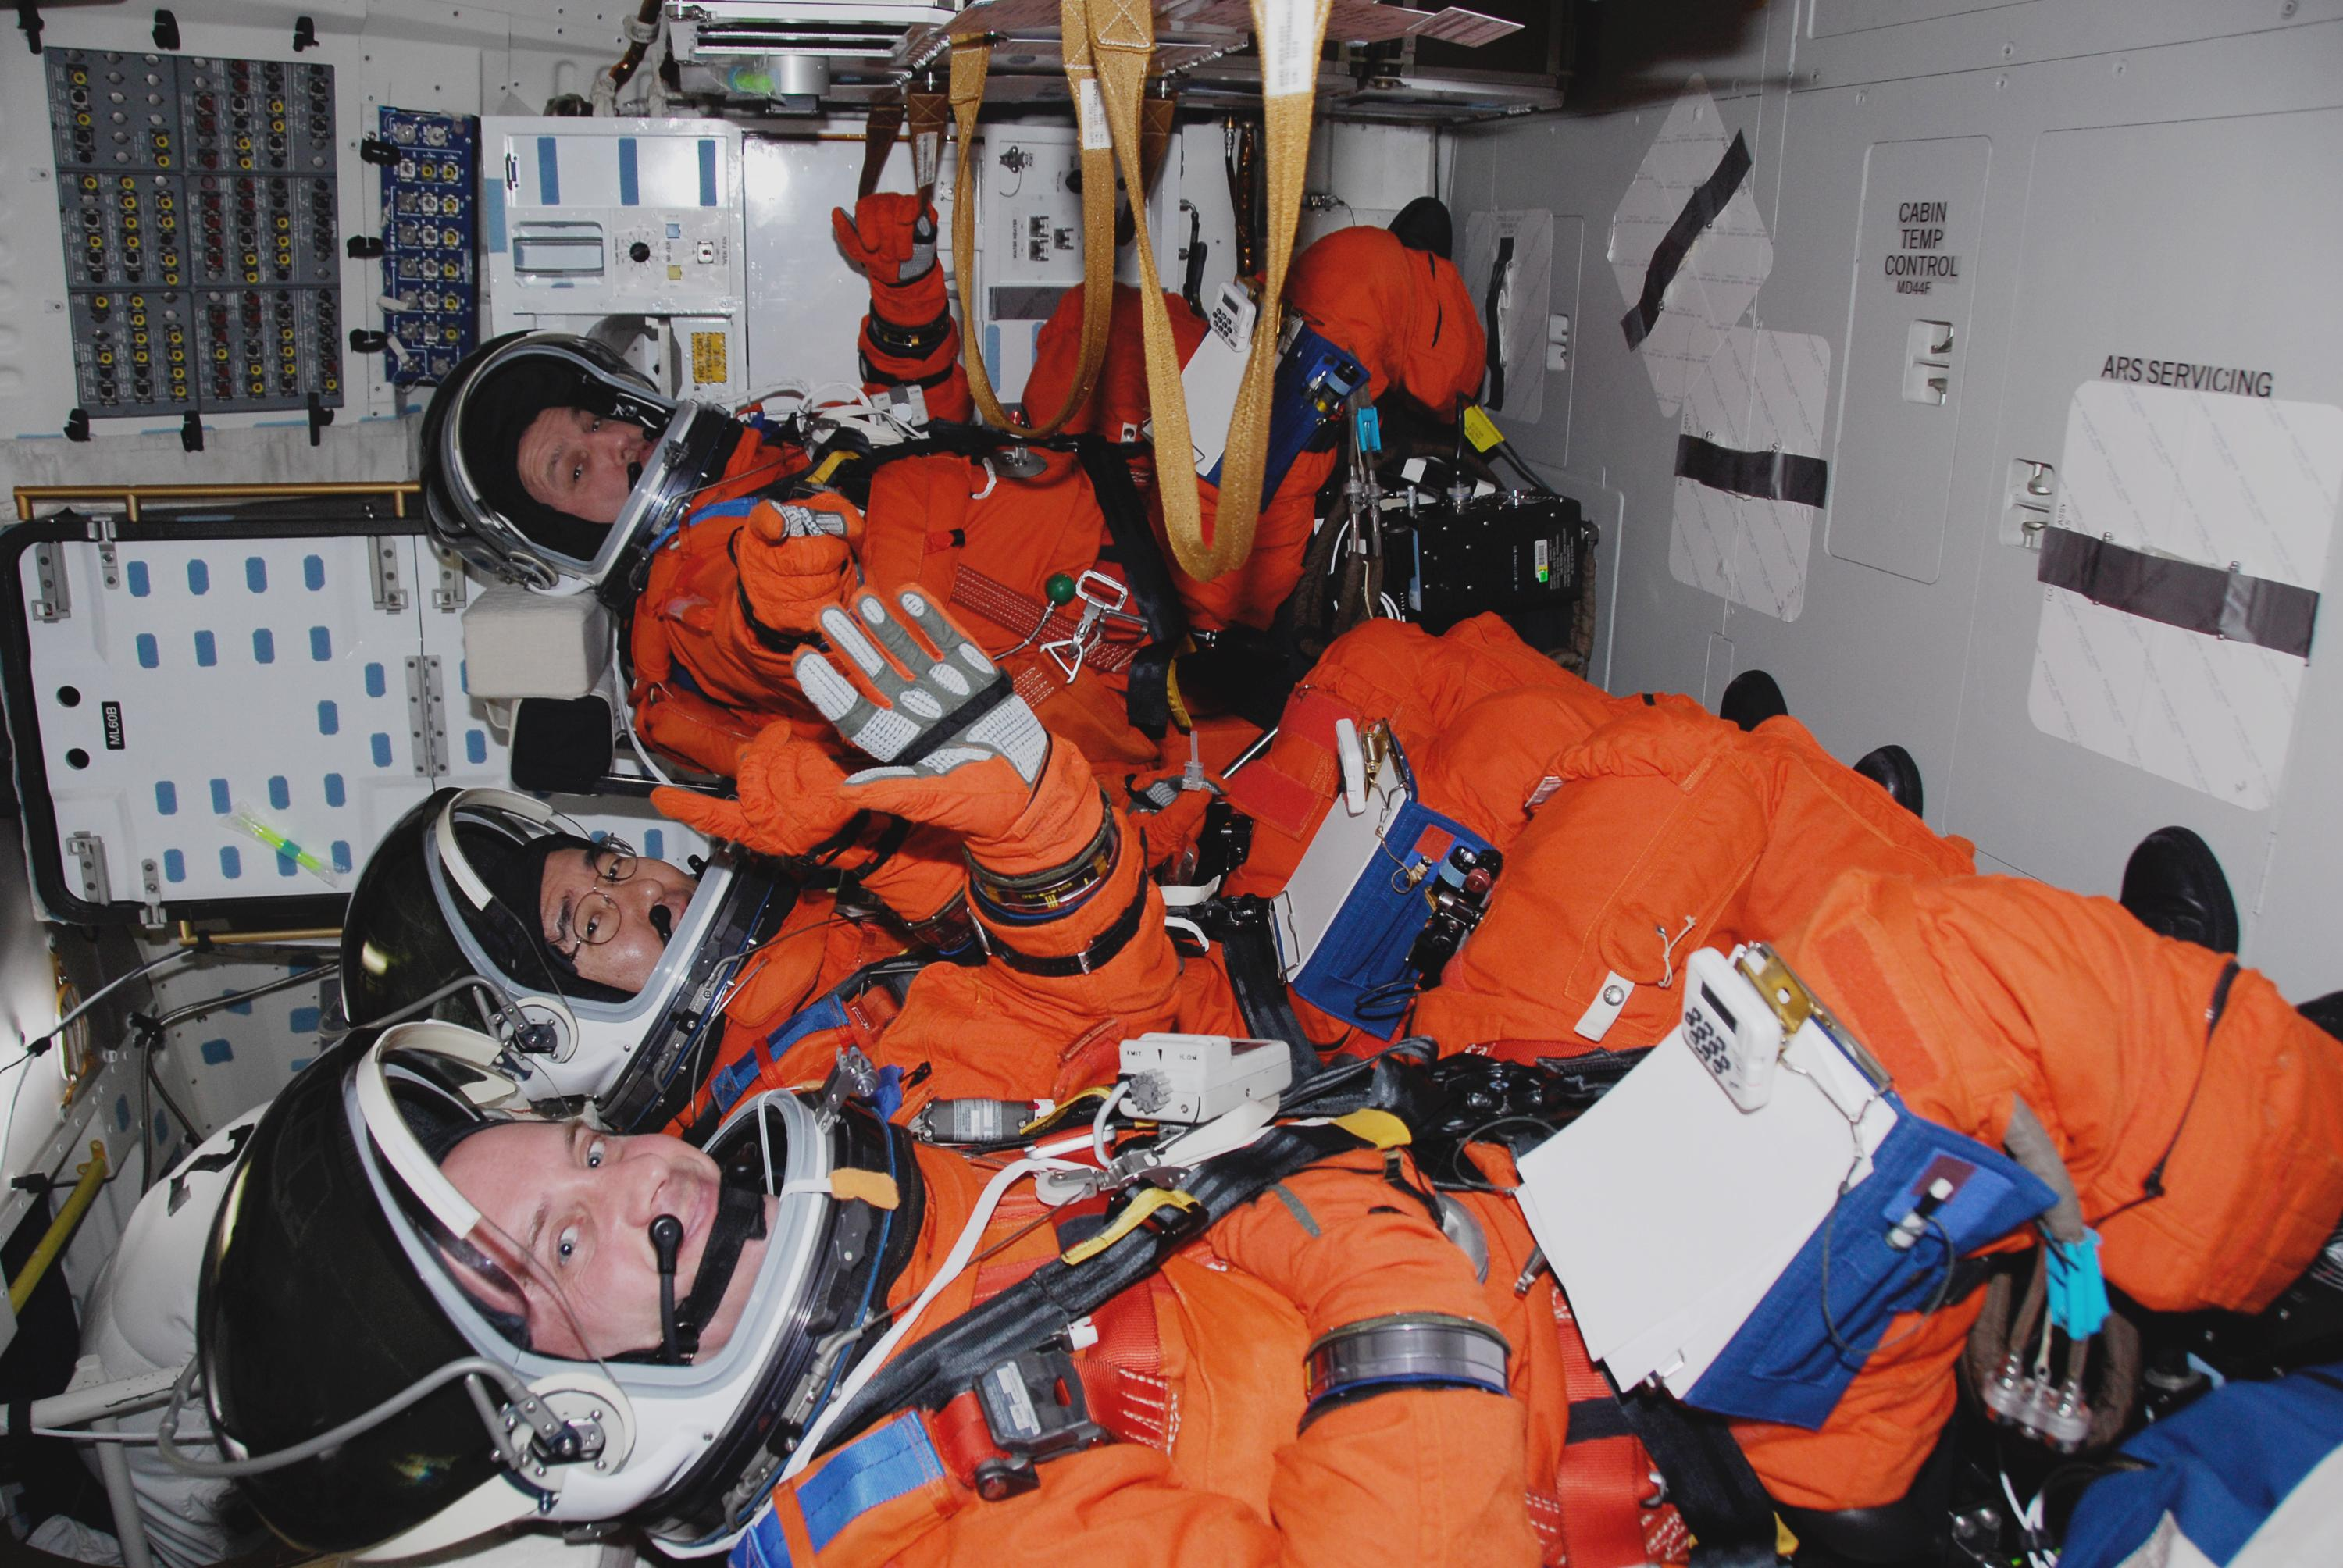 What g-force do astronauts experience during a rocket launch? |